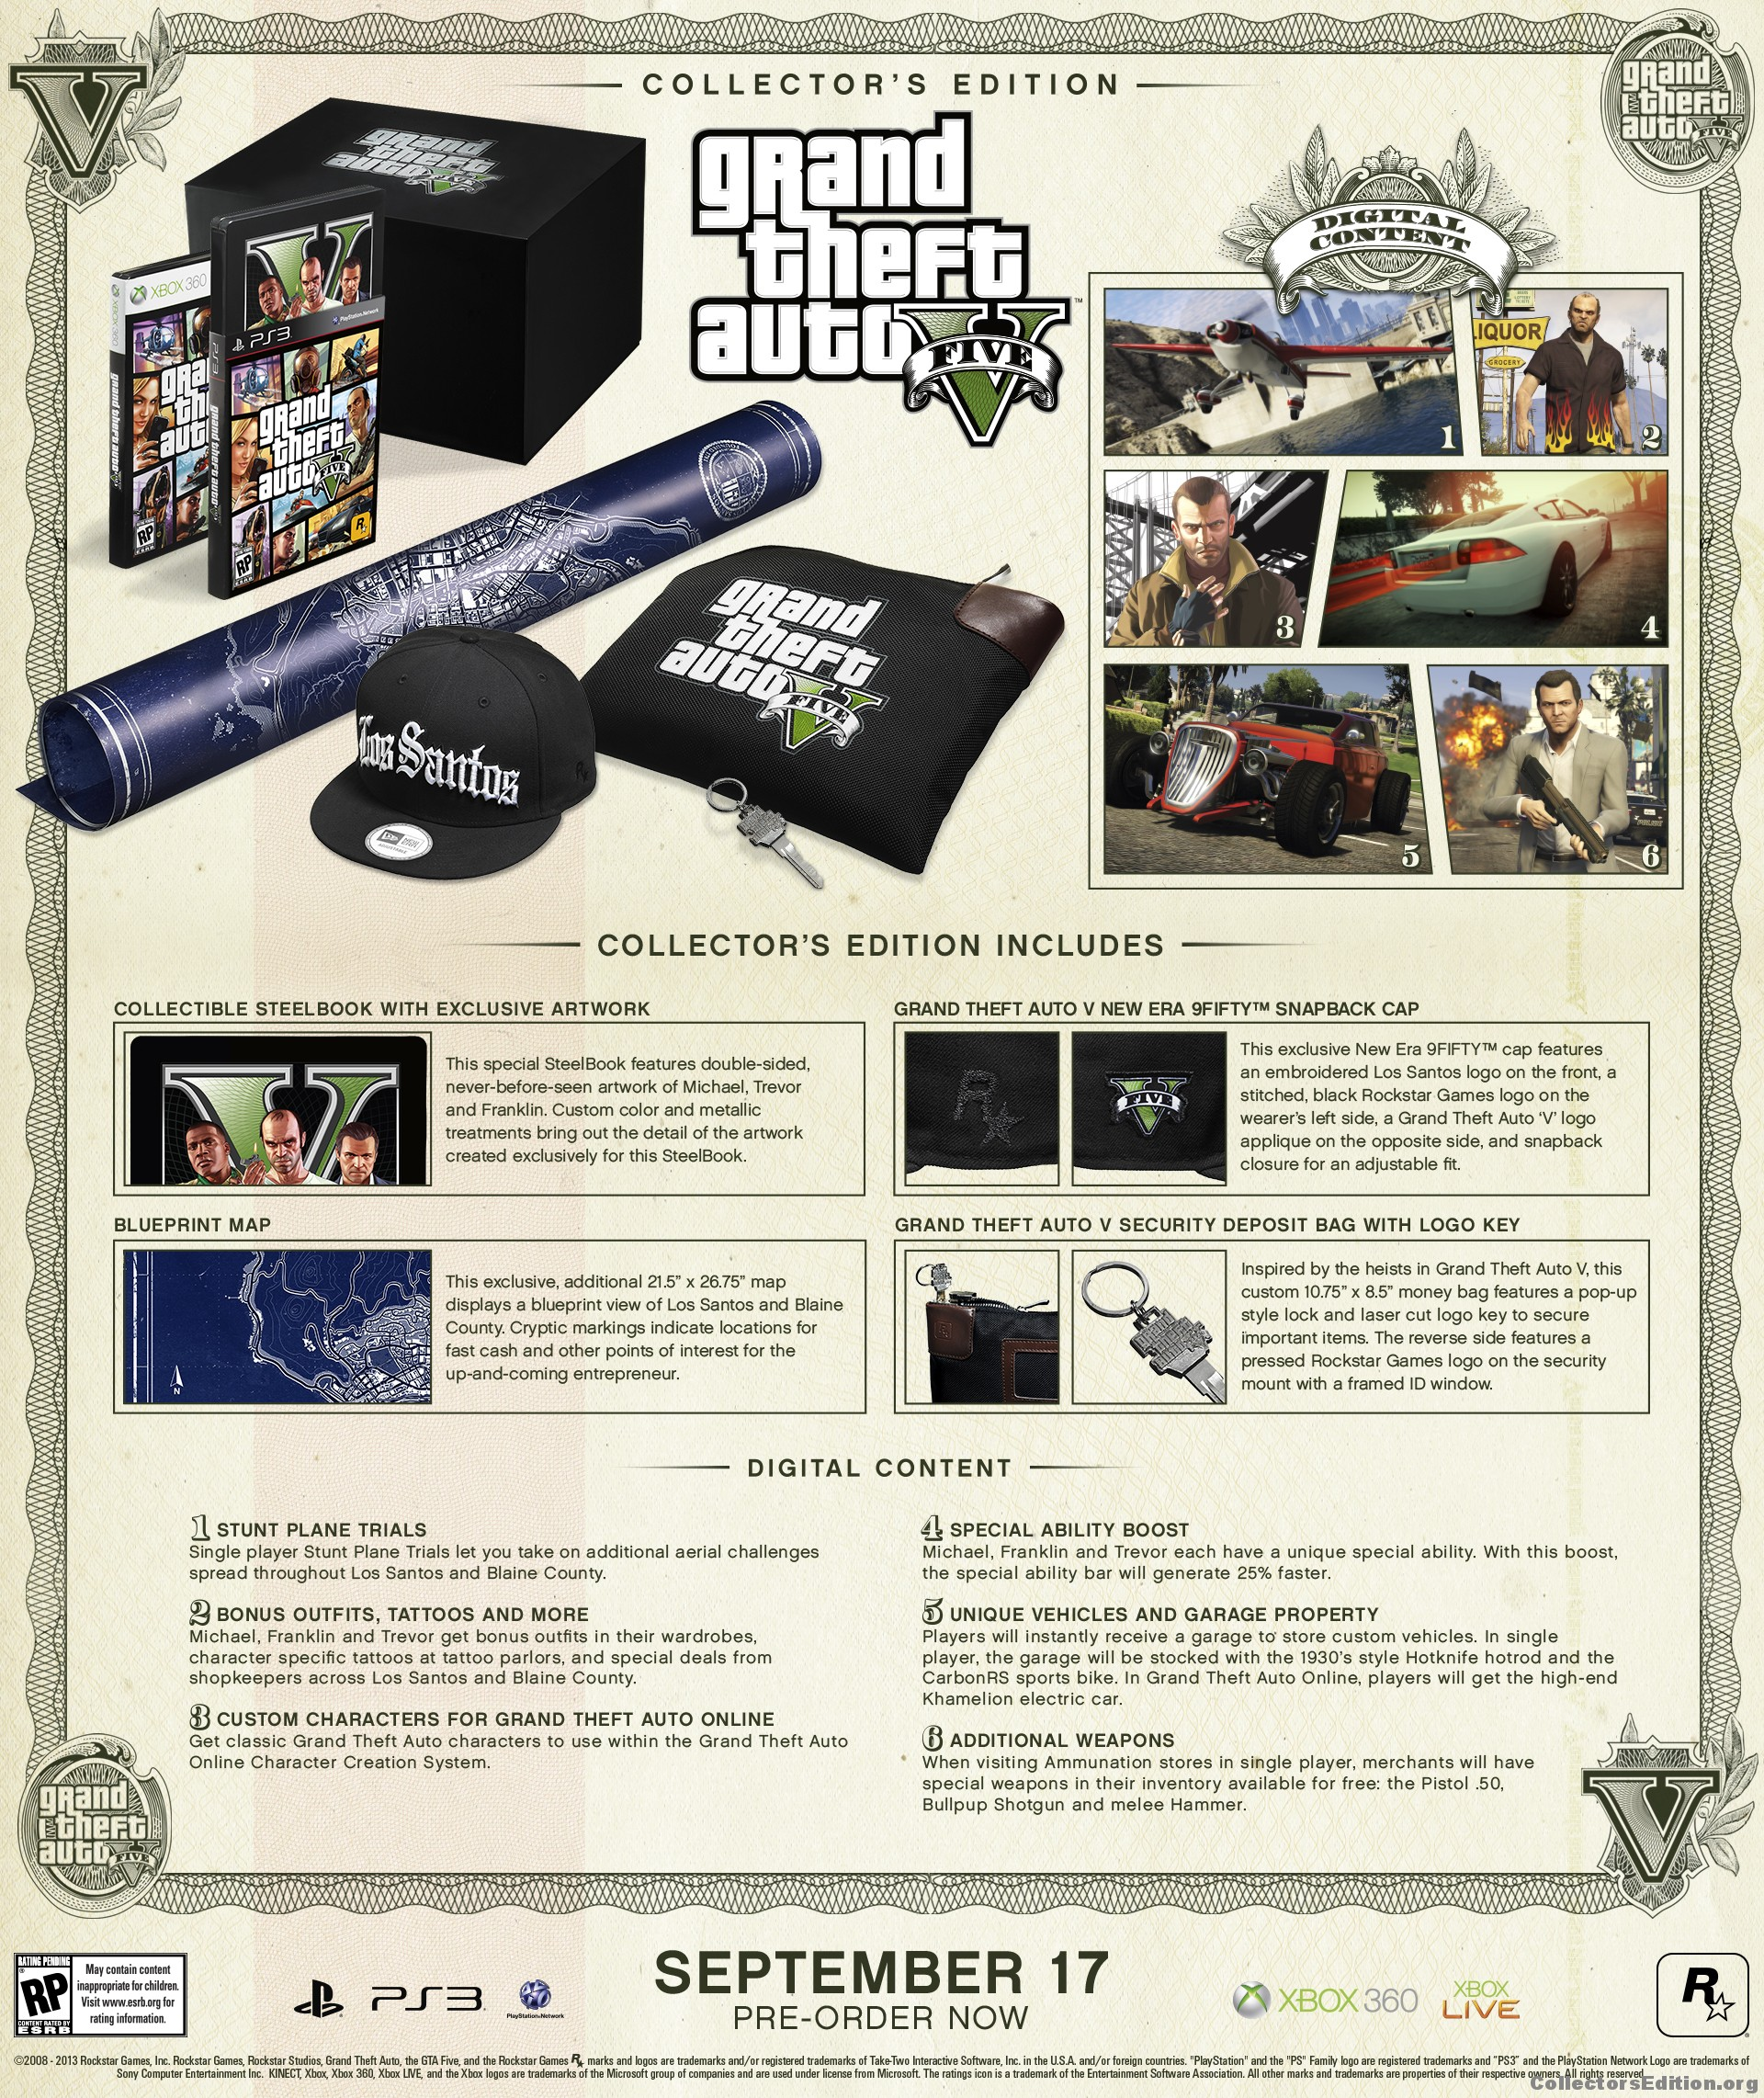 Collectorsedition ps3 grand theft auto 5 ce malvernweather Image collections